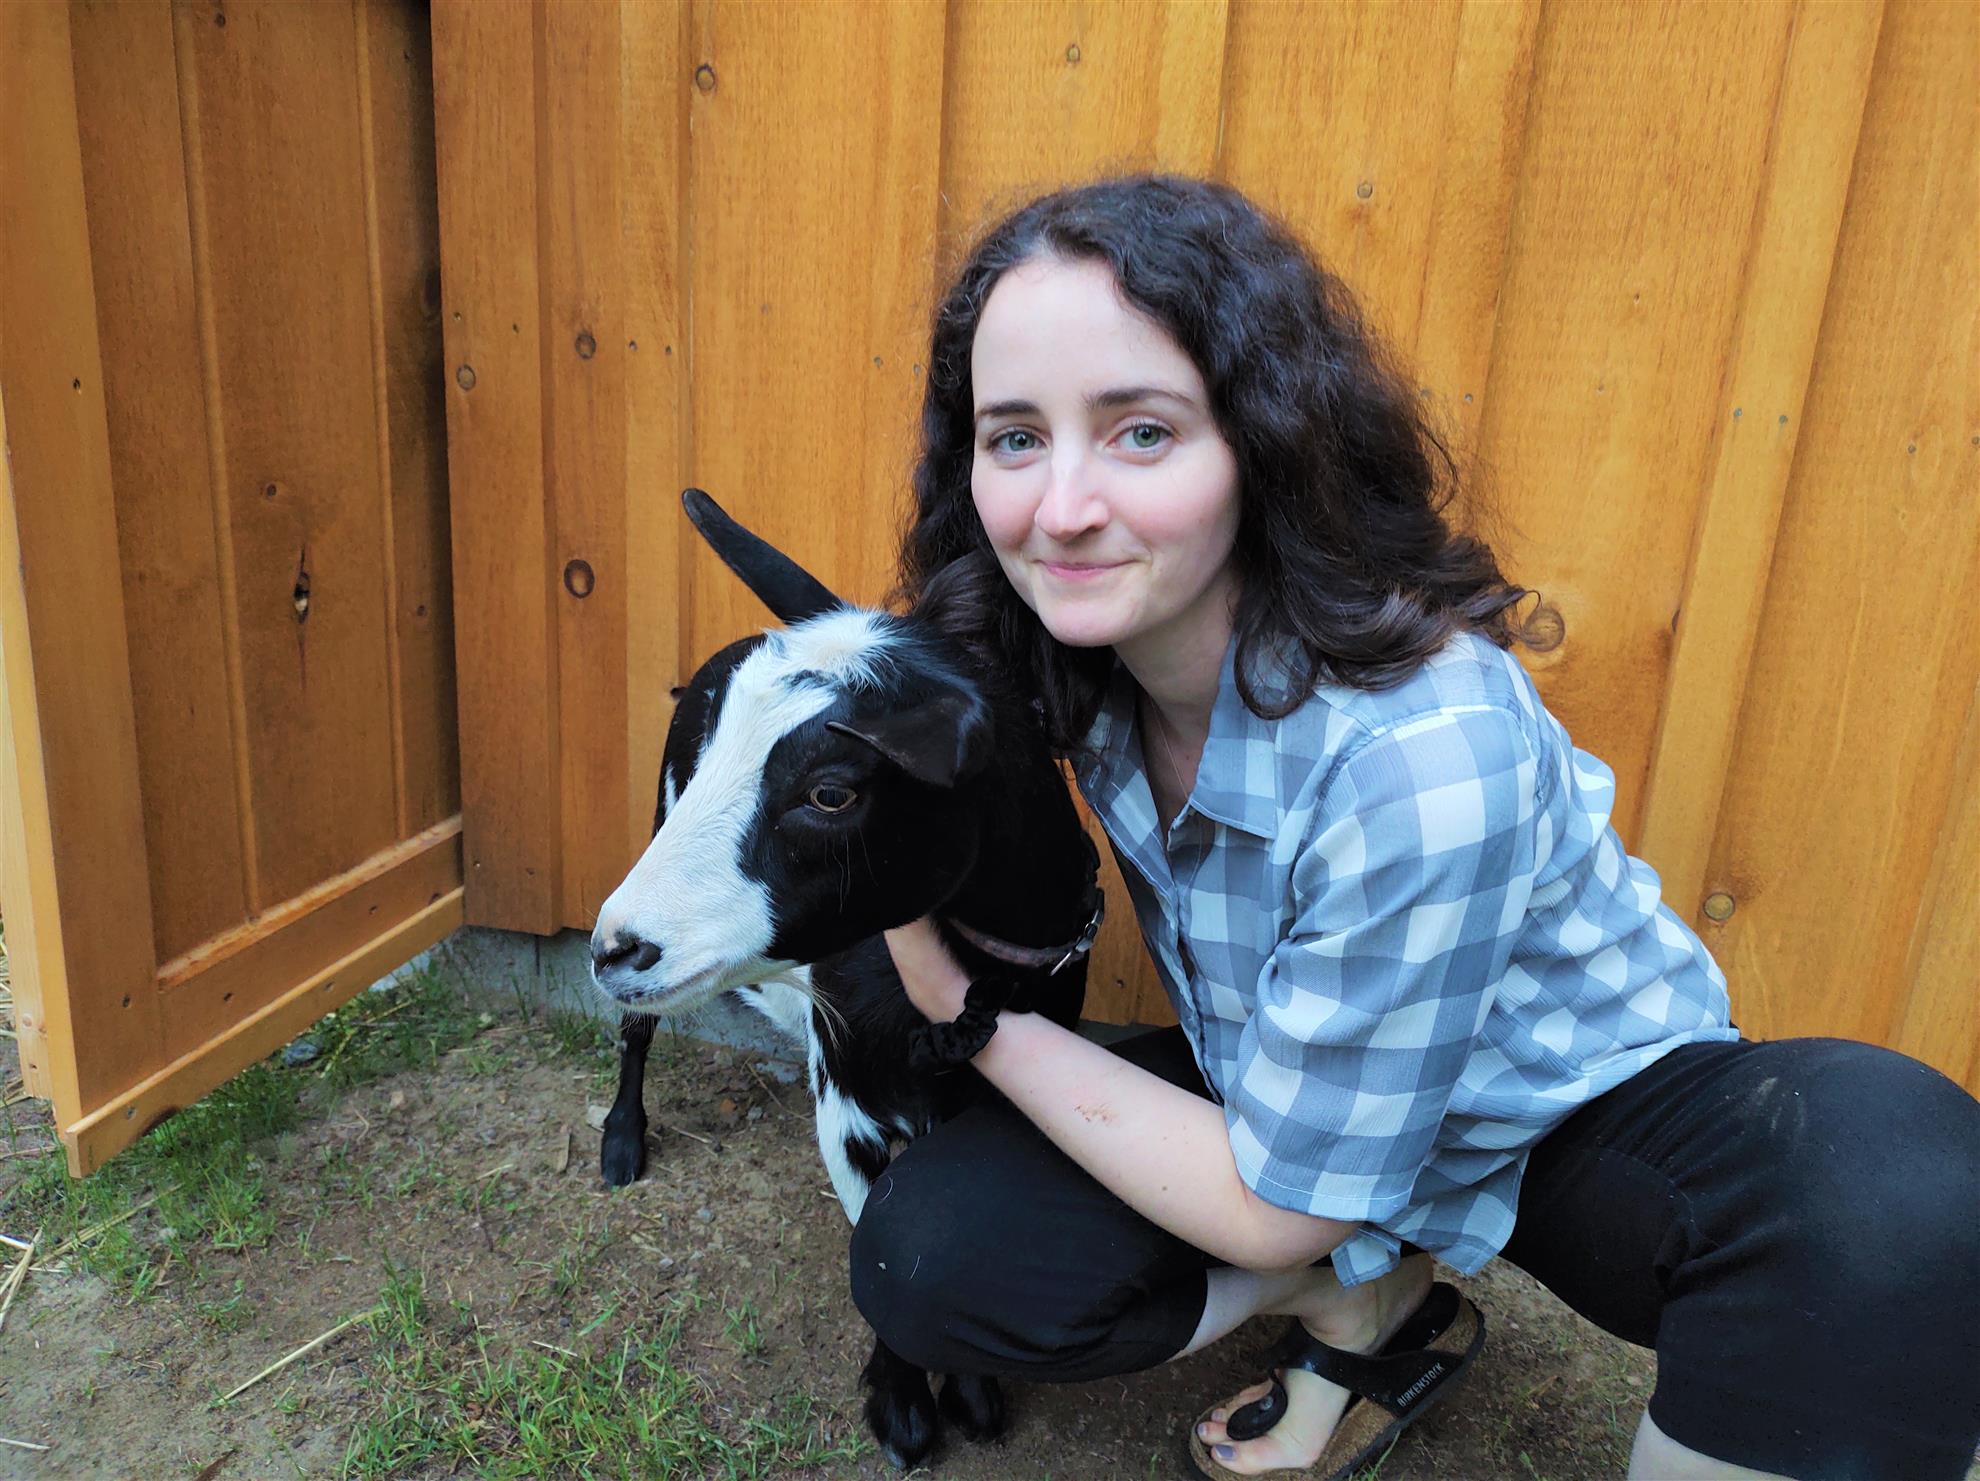 President Cara with a goat